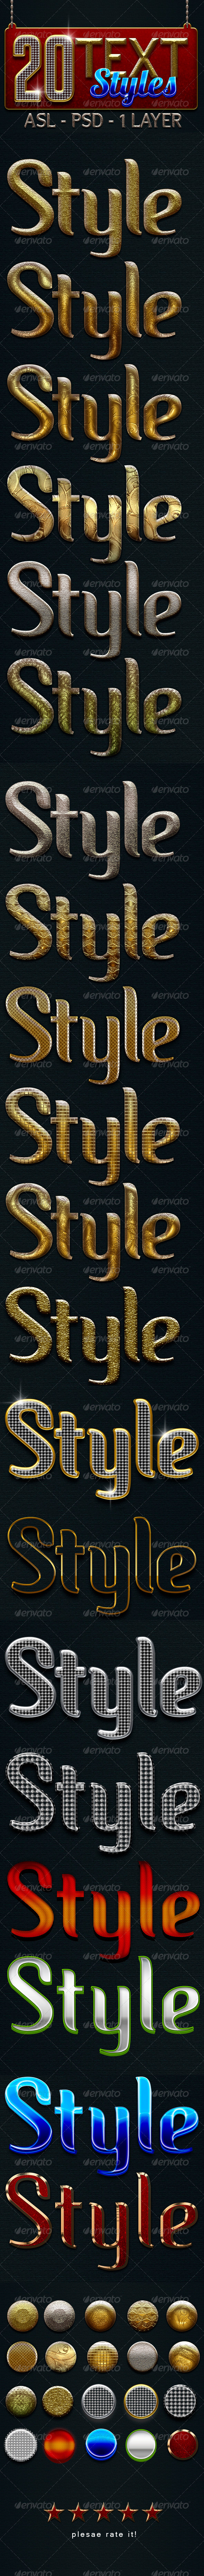 GraphicRiver 20 Text Layer Styles 3843385